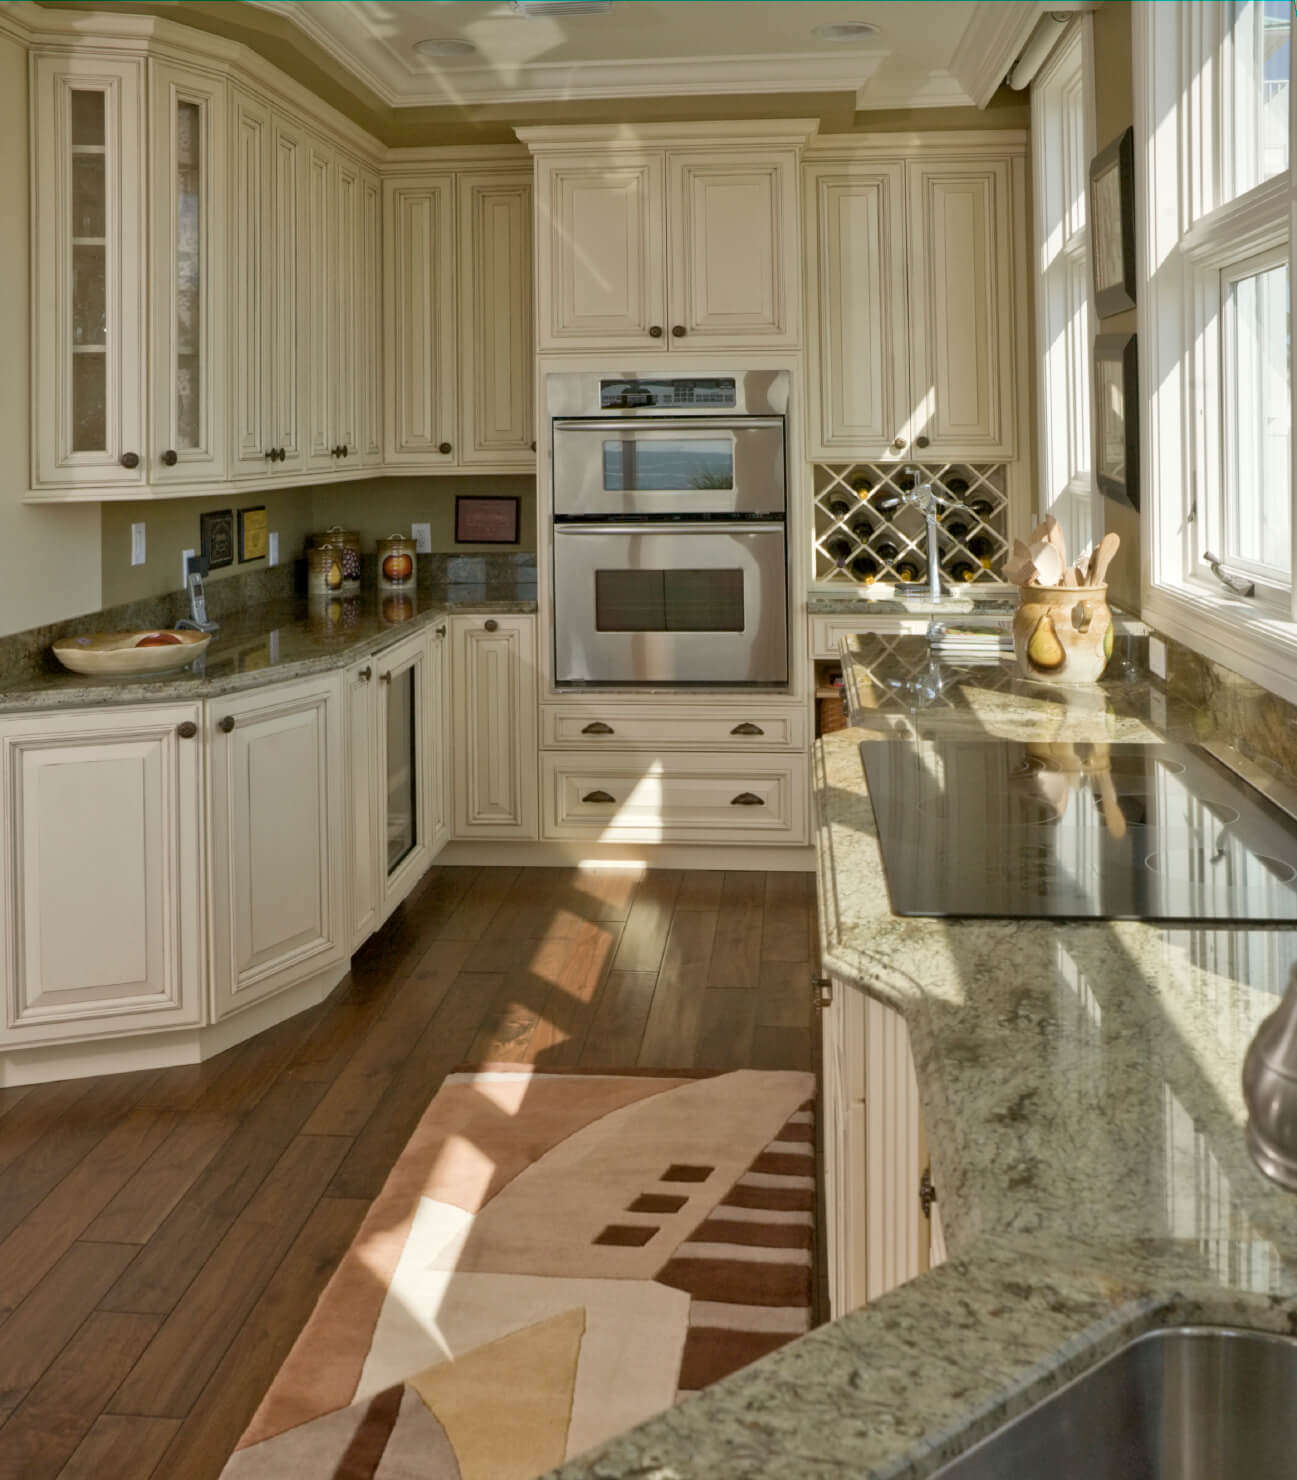 white kitchen designs pictures cheap kitchen flooring Treated white cabinets add to the old fashioned look in this compact kitchen featuring geometric rug